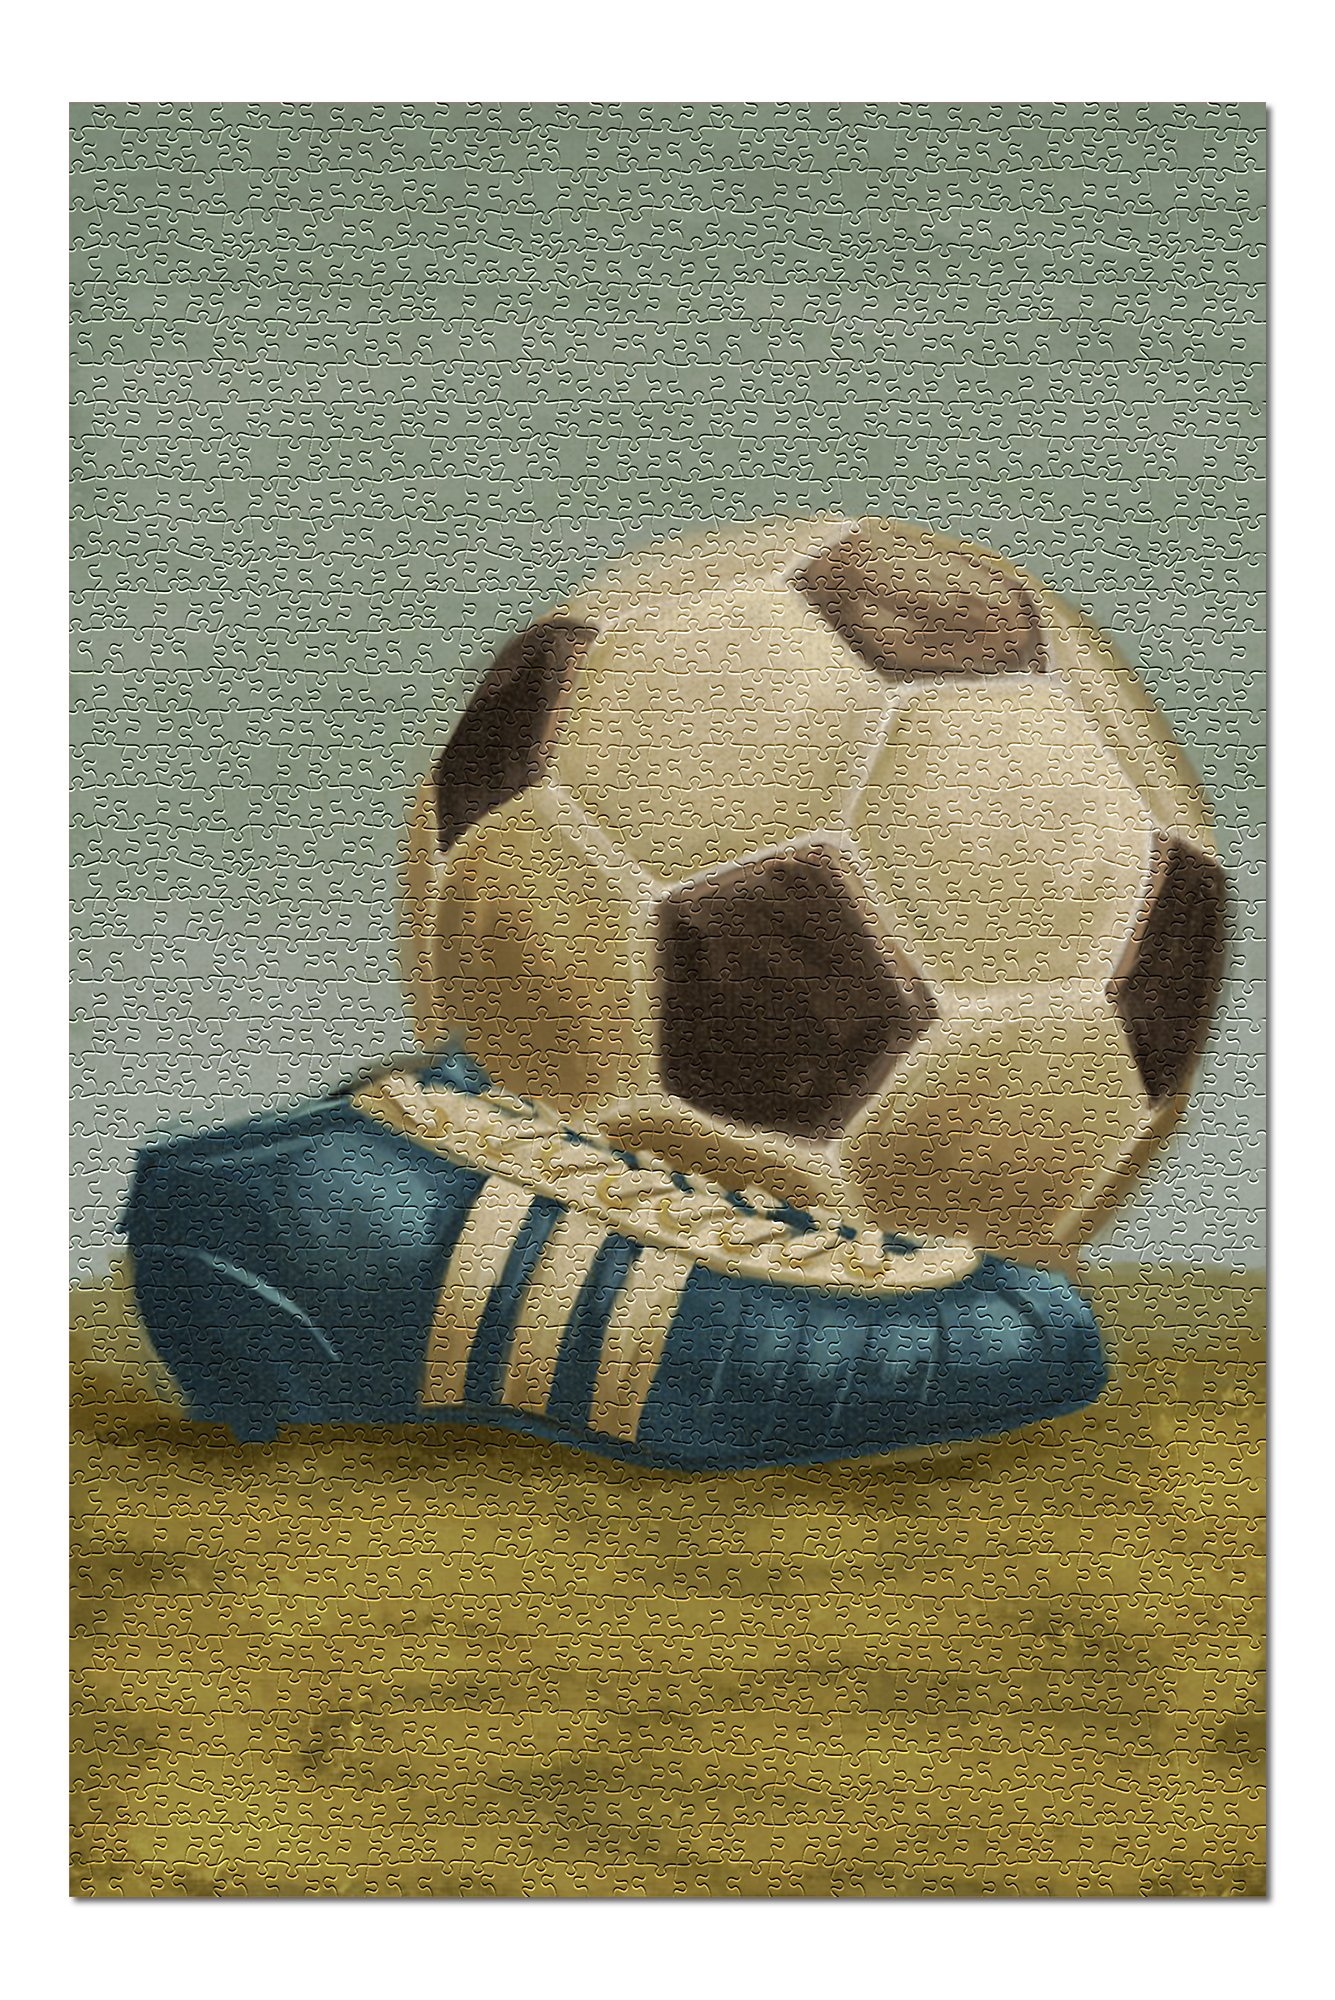 Soccer Ball and Cleat - Oil Painting (Premium 1000 Piece Jigsaw Puzzle for Adults, 20x30, Made in USA!)